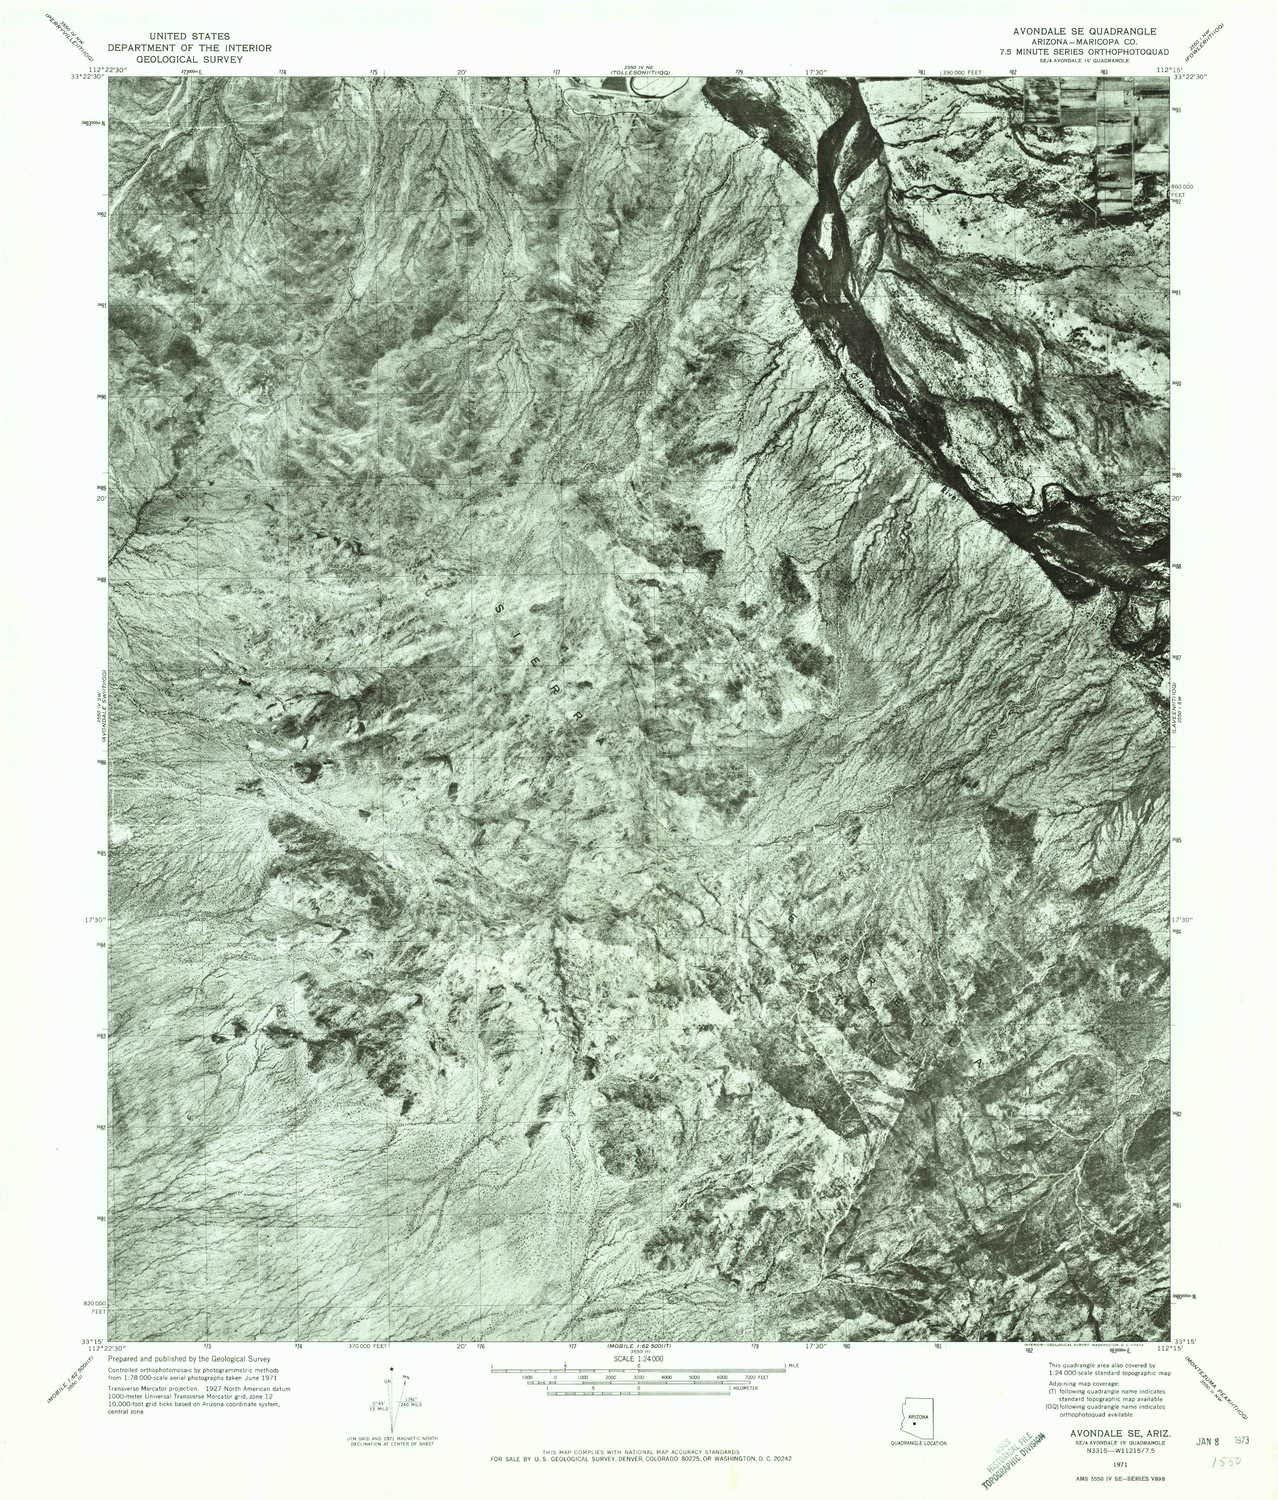 YellowMaps Avondale SE AZ topo map Large special price 7.5 Min X Scale Challenge the lowest price of Japan 1:24000